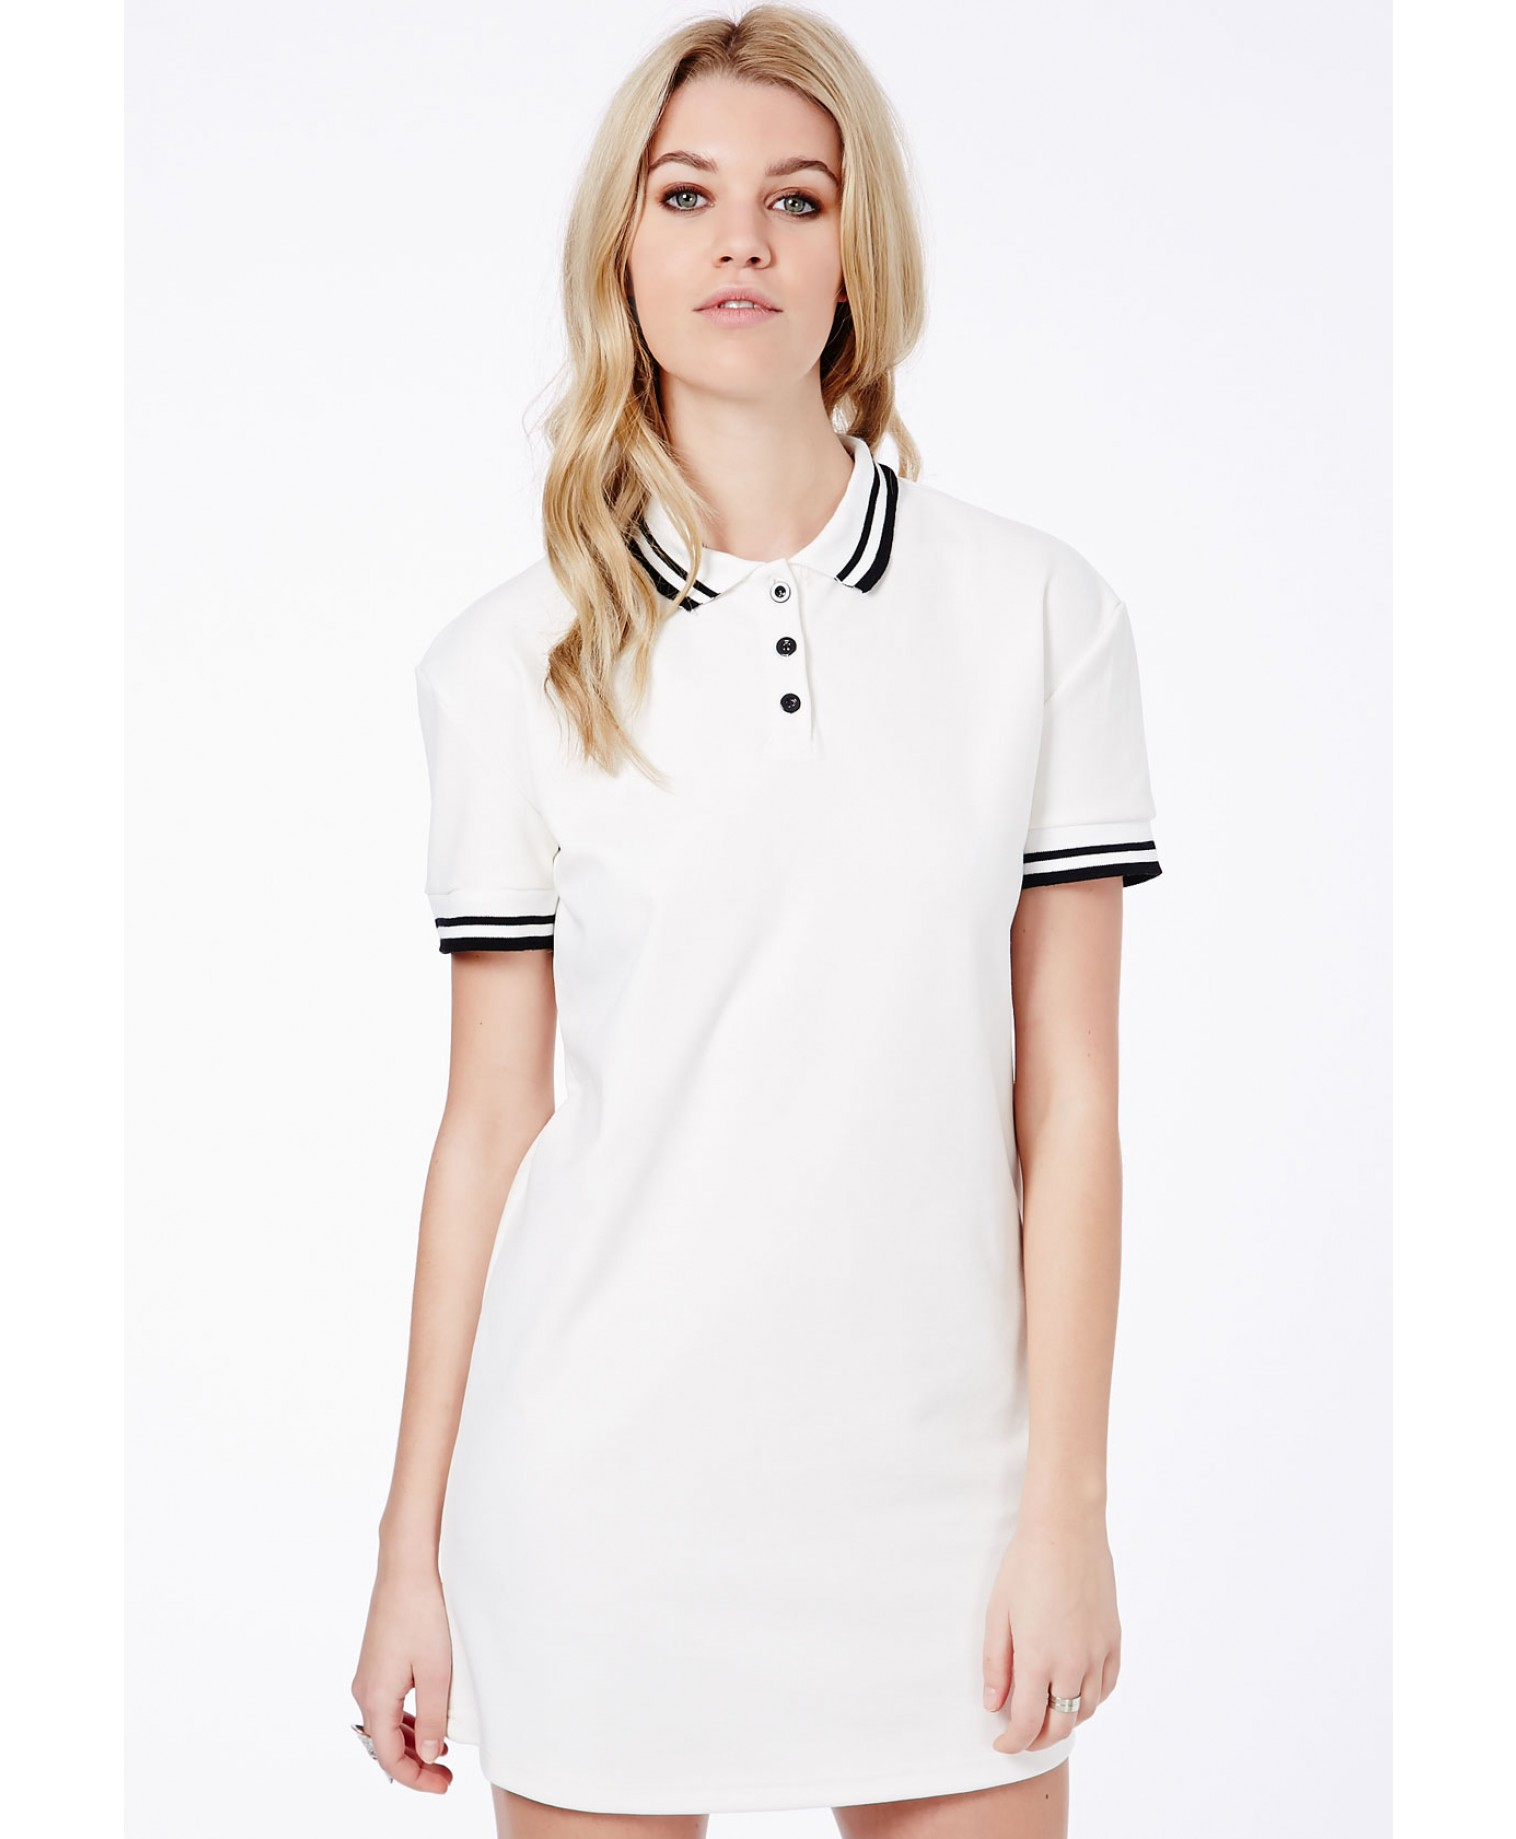 Lyst - Missguided Adela Oversized Polo Tshirt Mini Dress ...